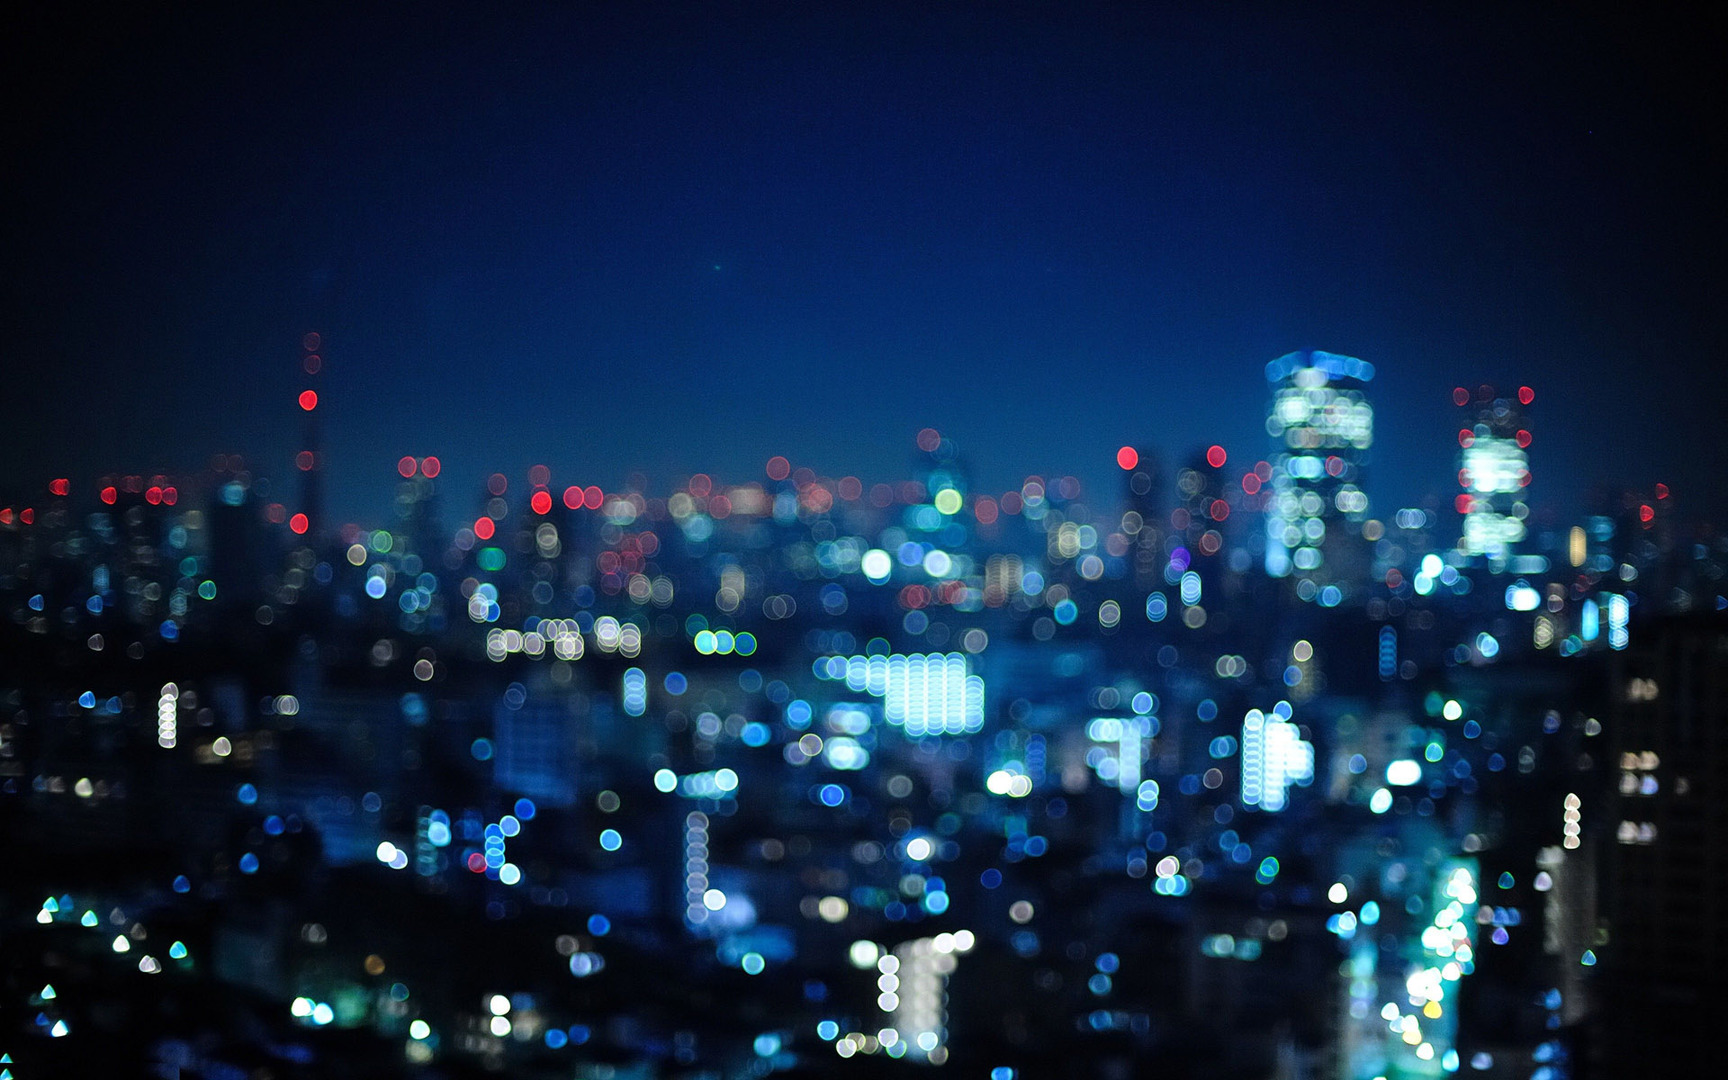 Download Blurry city lights wallpaper 1728x1080